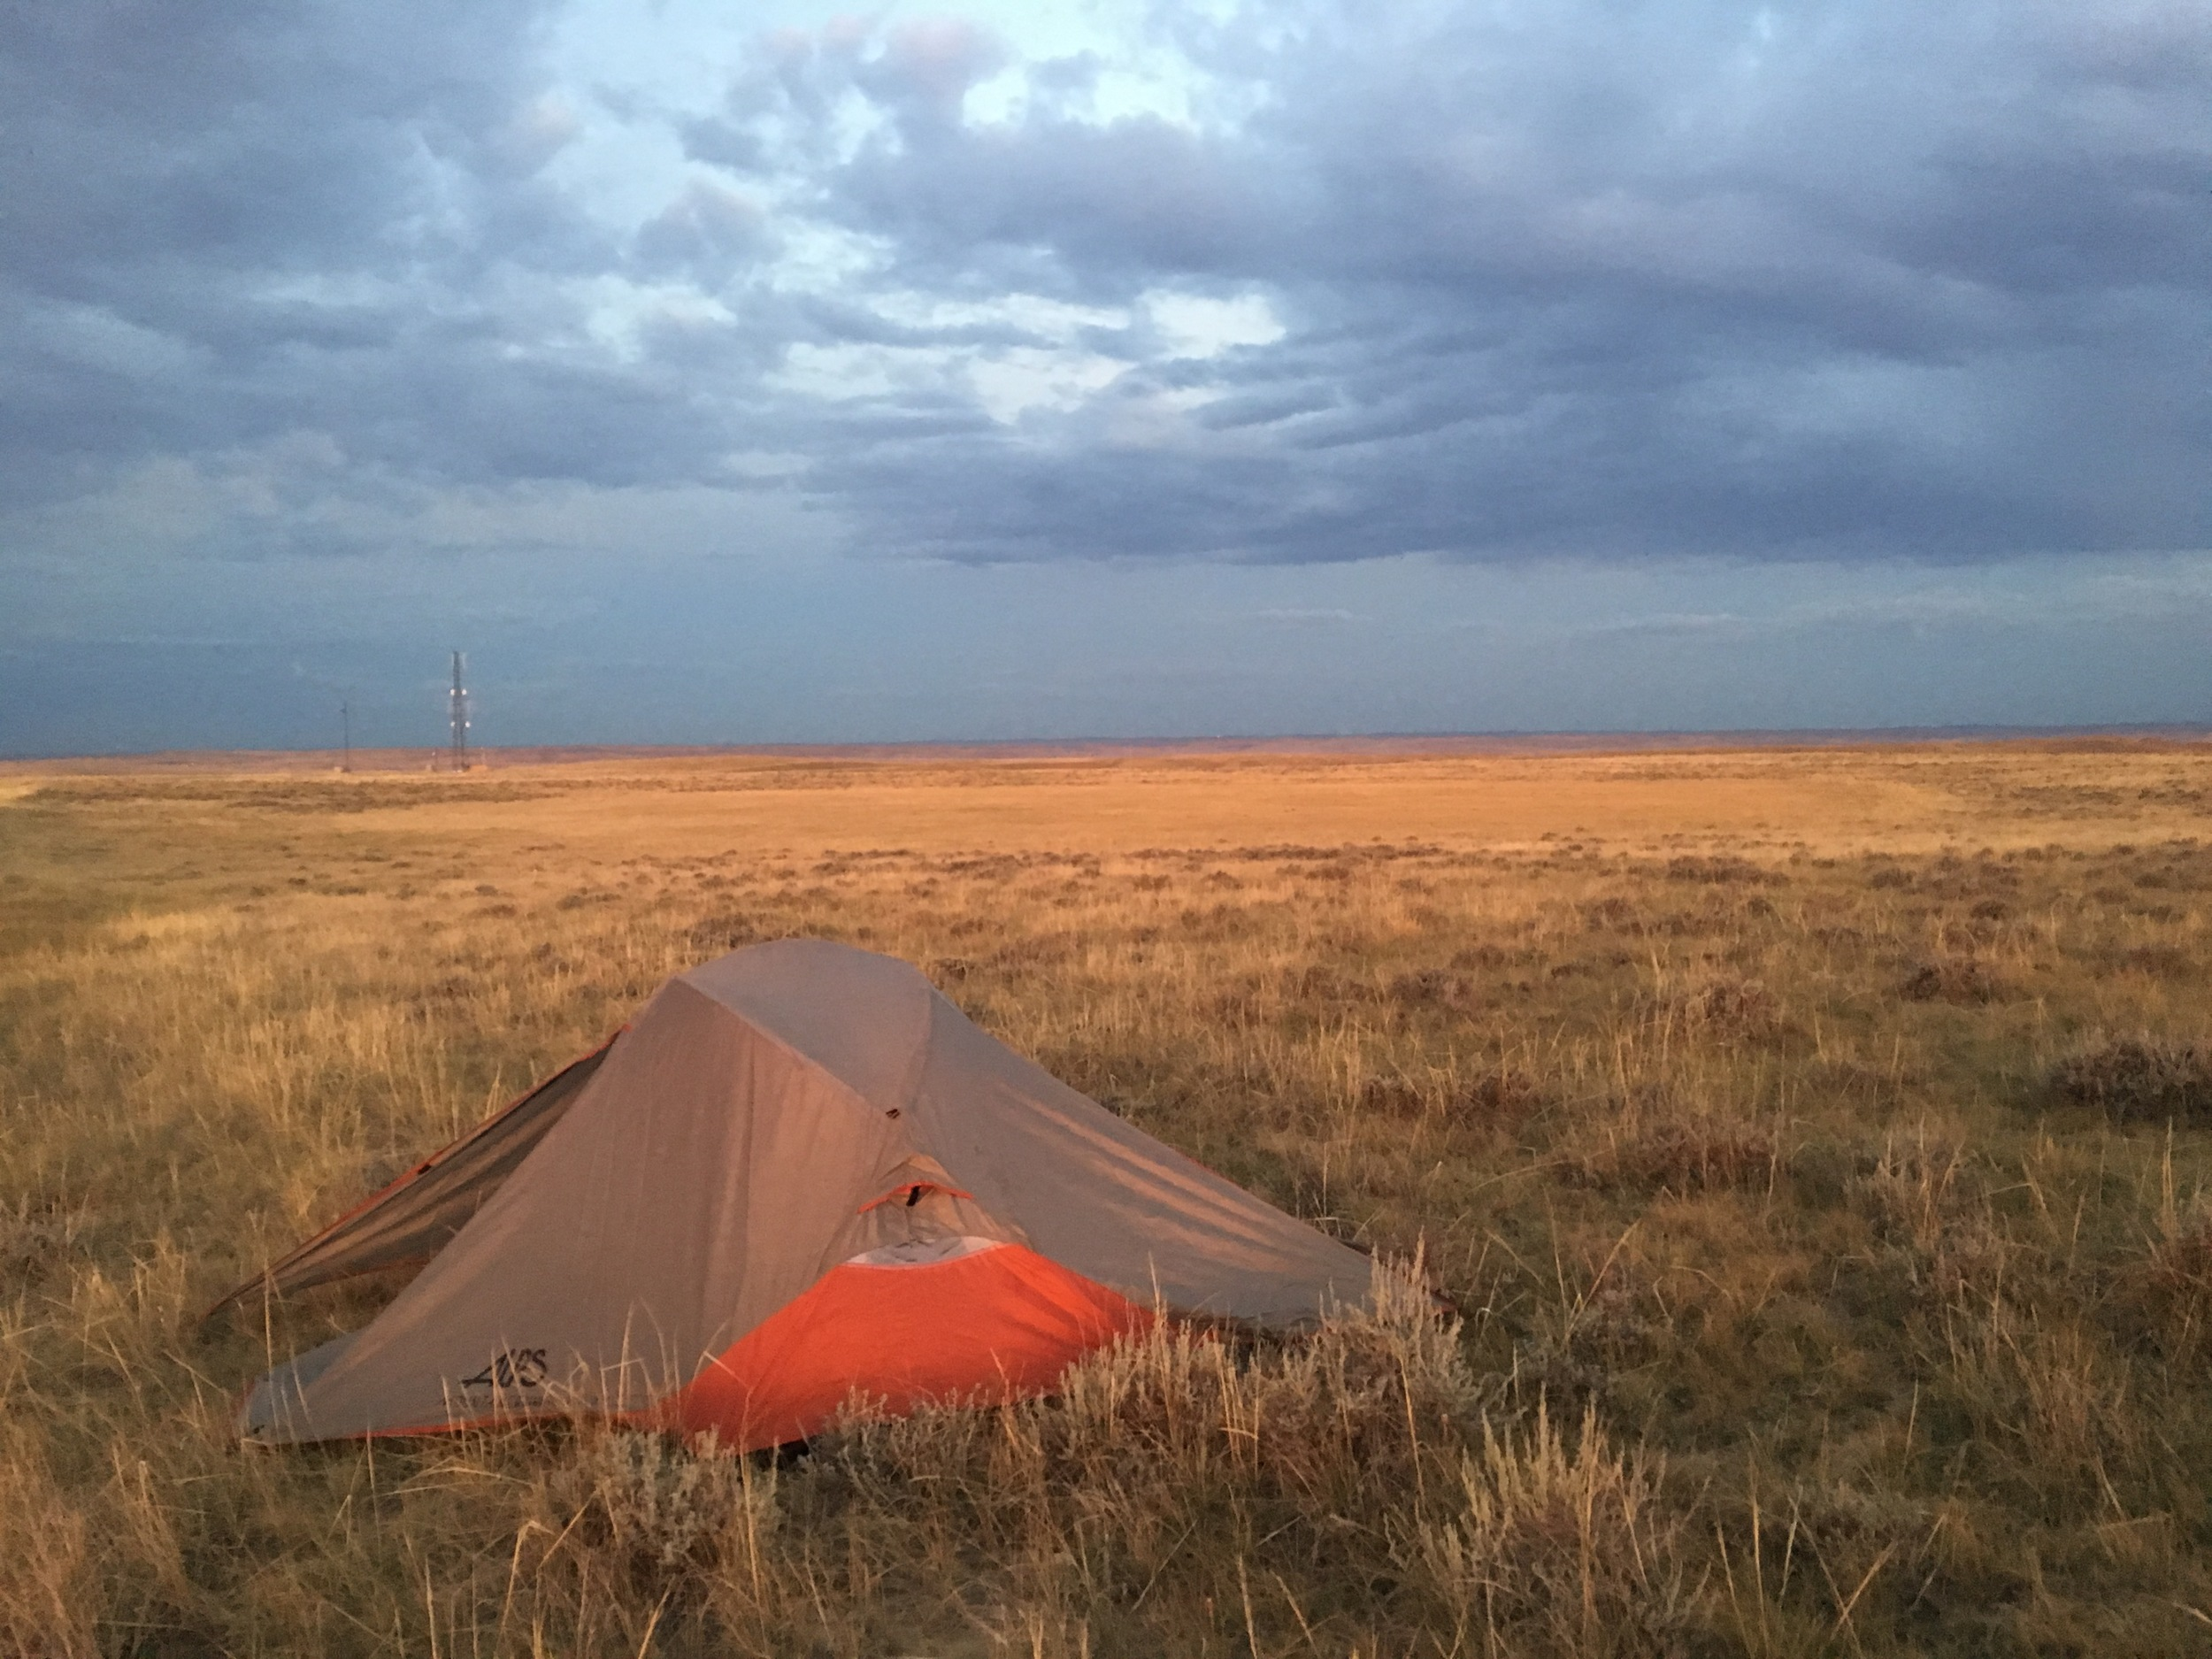 Camping on the Grasslands